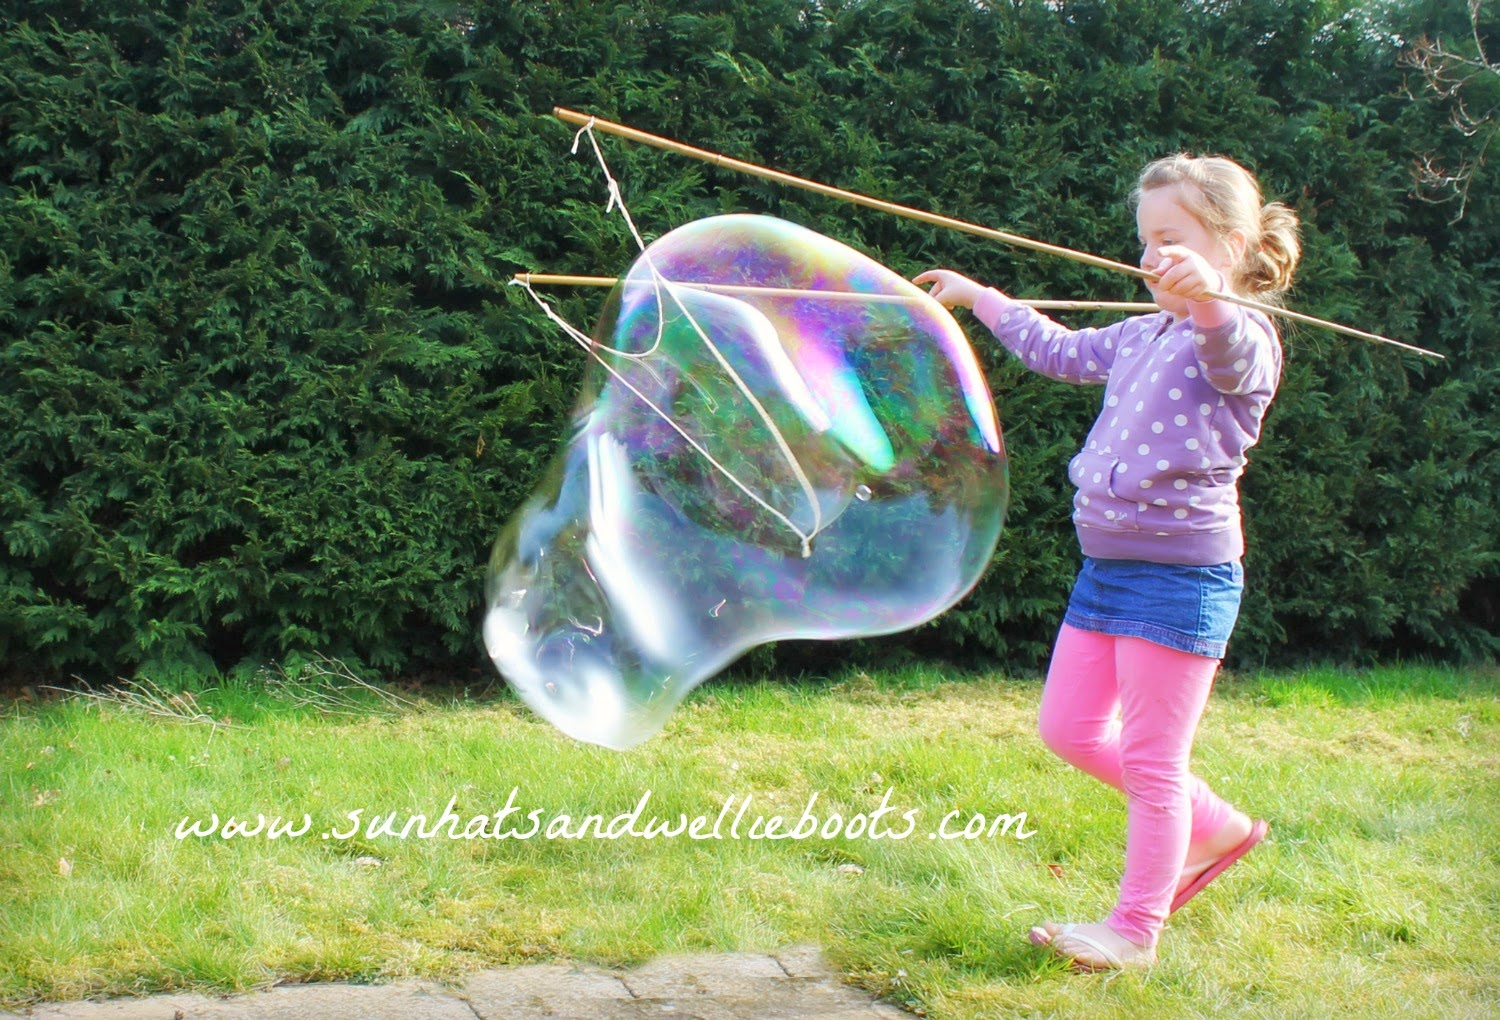 Sun hats wellie boots how to make giant bubbles with a for Giant bubble wand